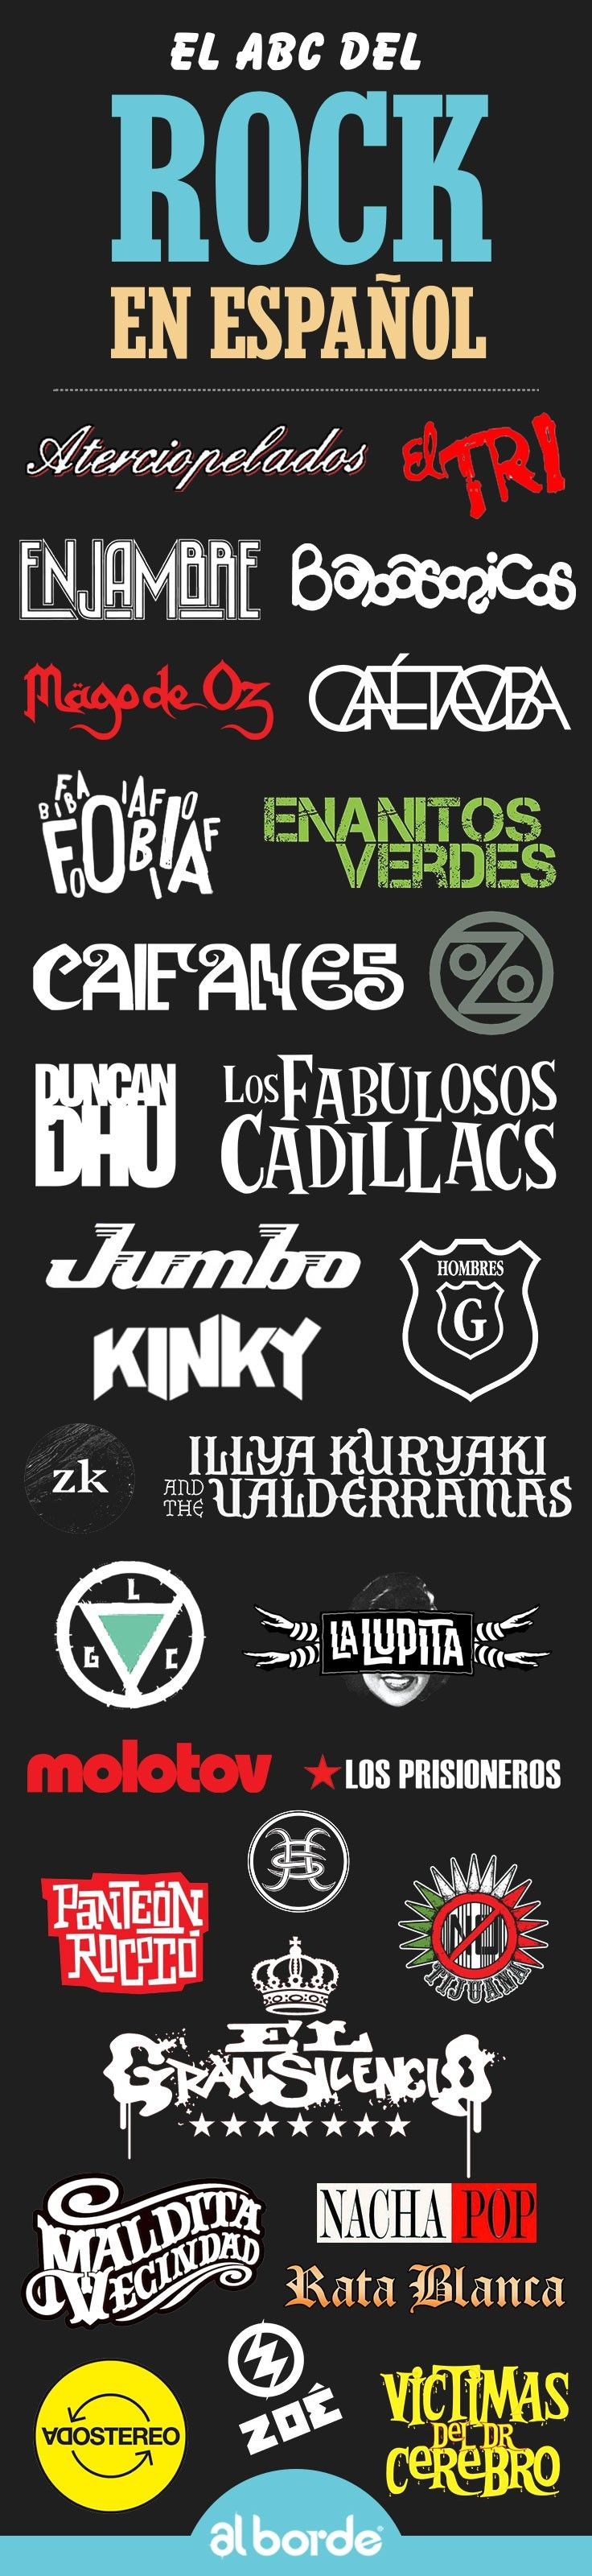 AB's Top Music News | Rock en espanol |